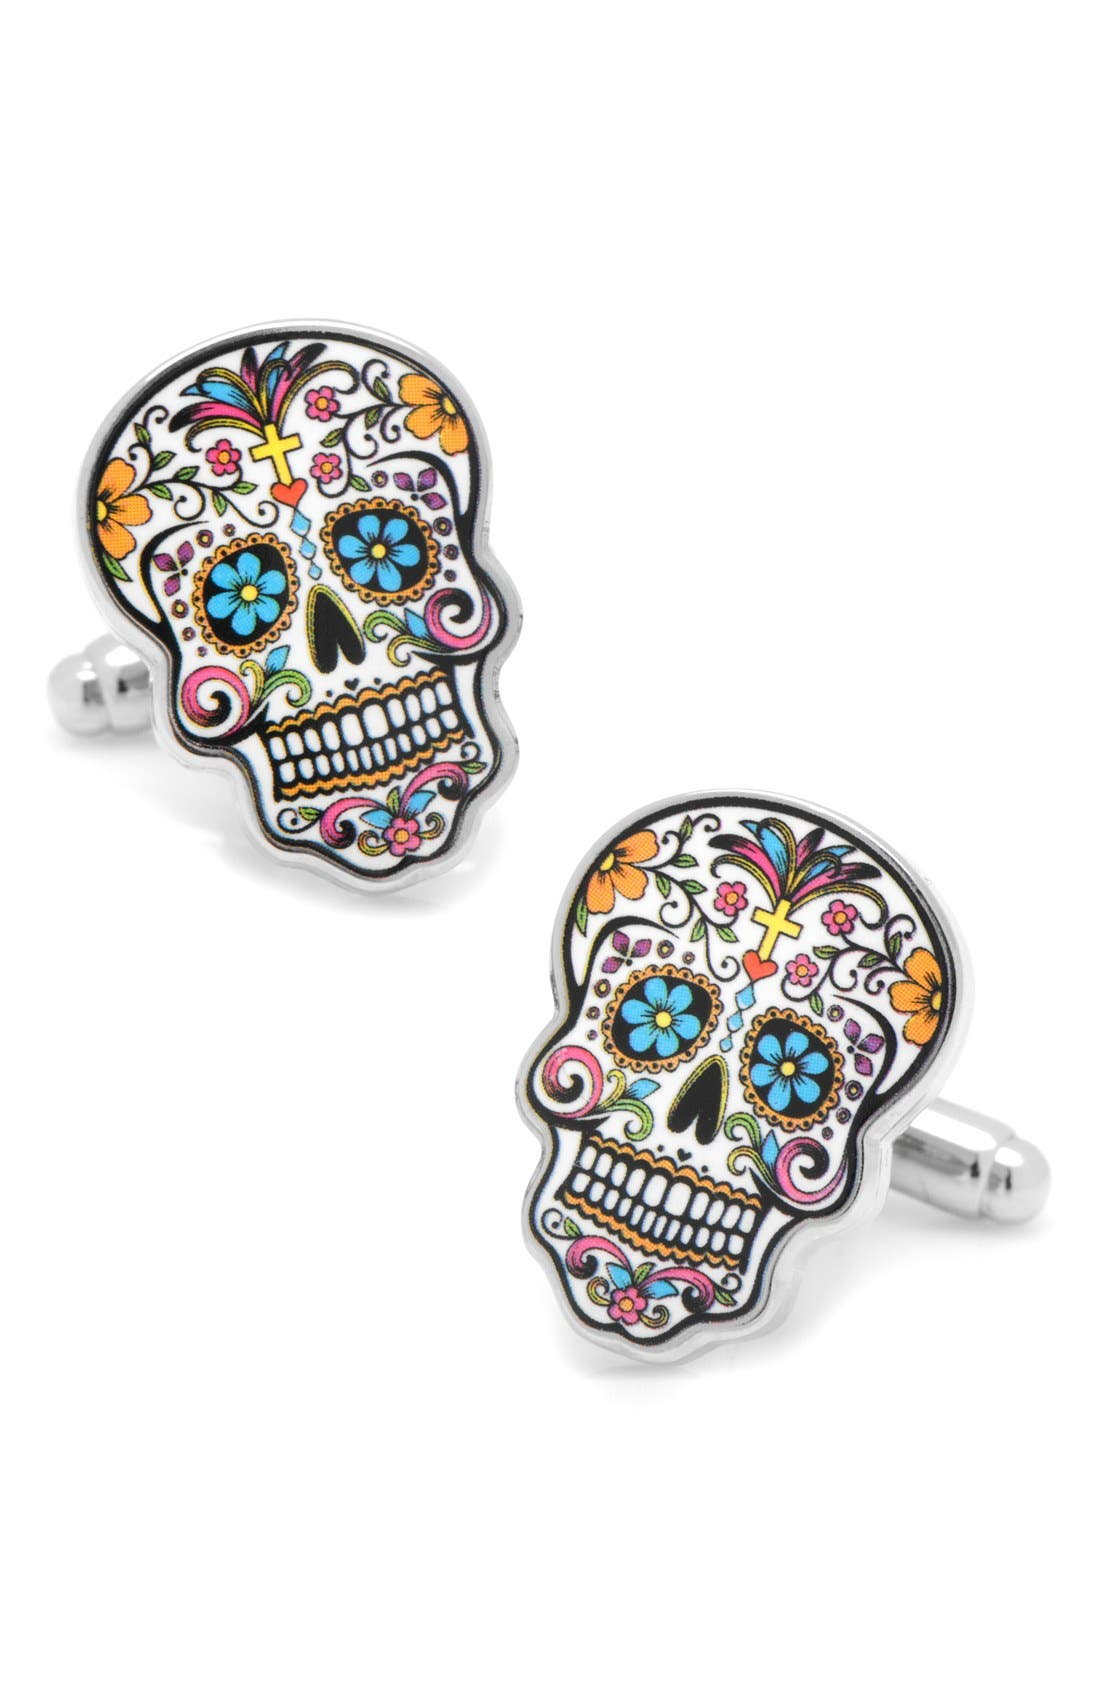 'Day of the Dead' Cuff Links,                         Main,                         color, Silver/ Black/ Pink